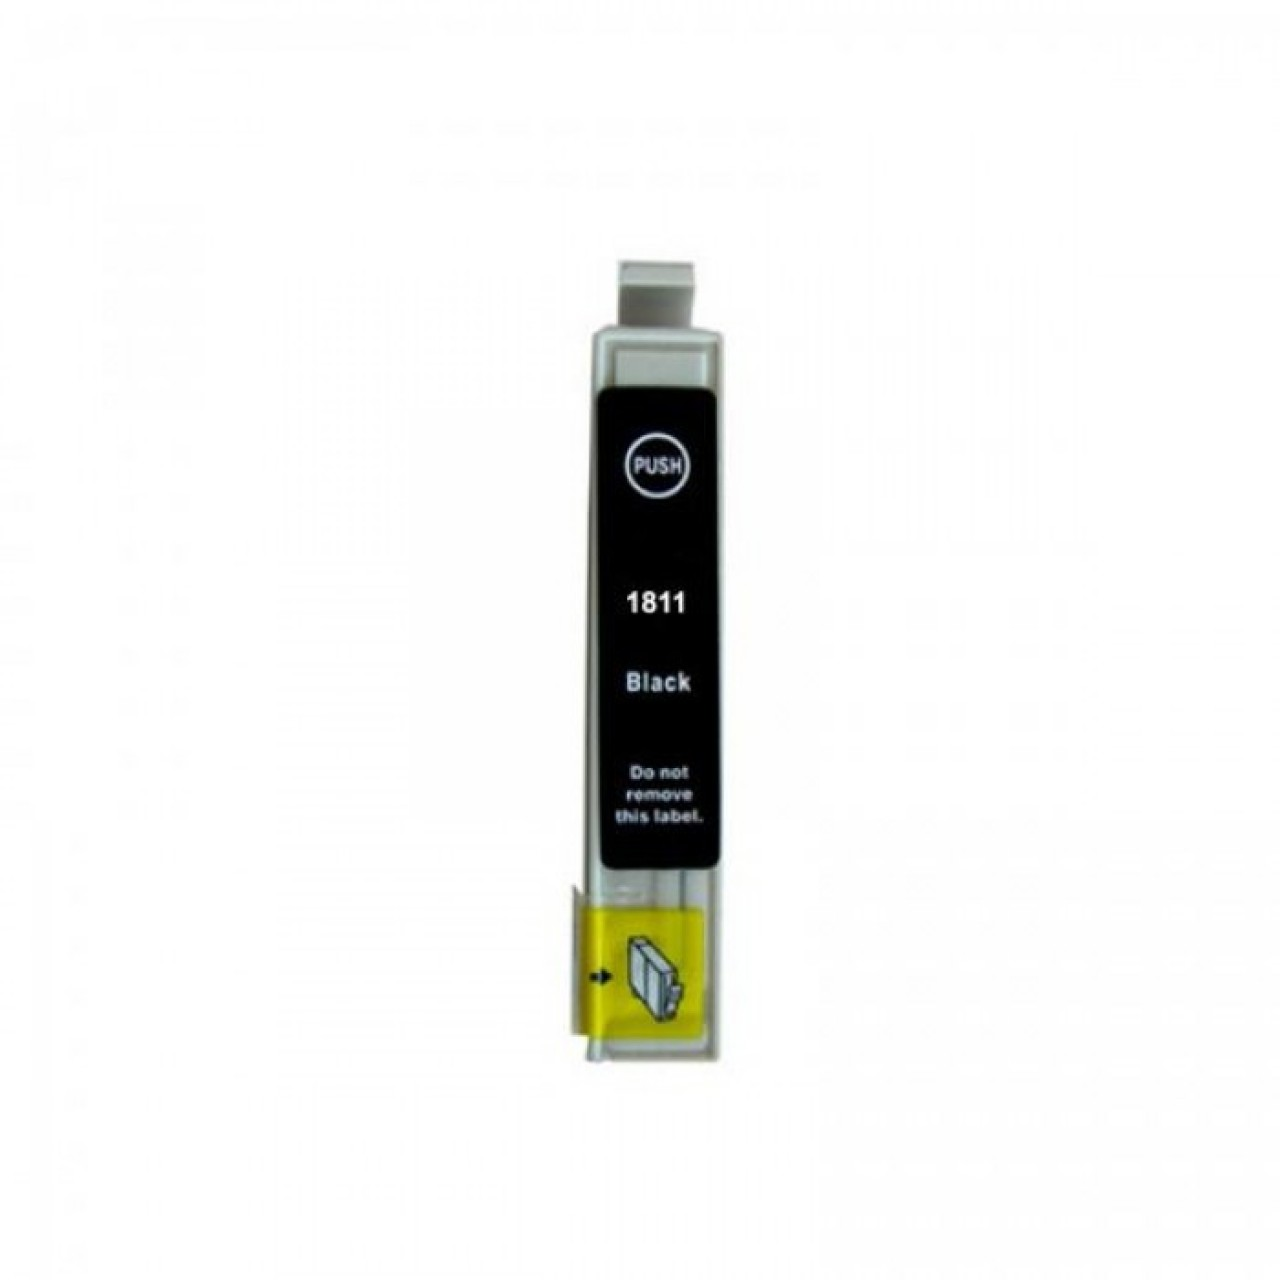 Μελάνι Epson PF Συμβατό T18XL - T1811XL 15ml Black για Epson Expression Home XP: 30, 33, 100, 102, 200, 202, 205, 210, 212, 215, 225, 300, 302, 305, 310, 312, 313, 315, 320, 322, 325, 400, 402, 405, 405WH, 410, 412, 413, 415, 420, 422, 425